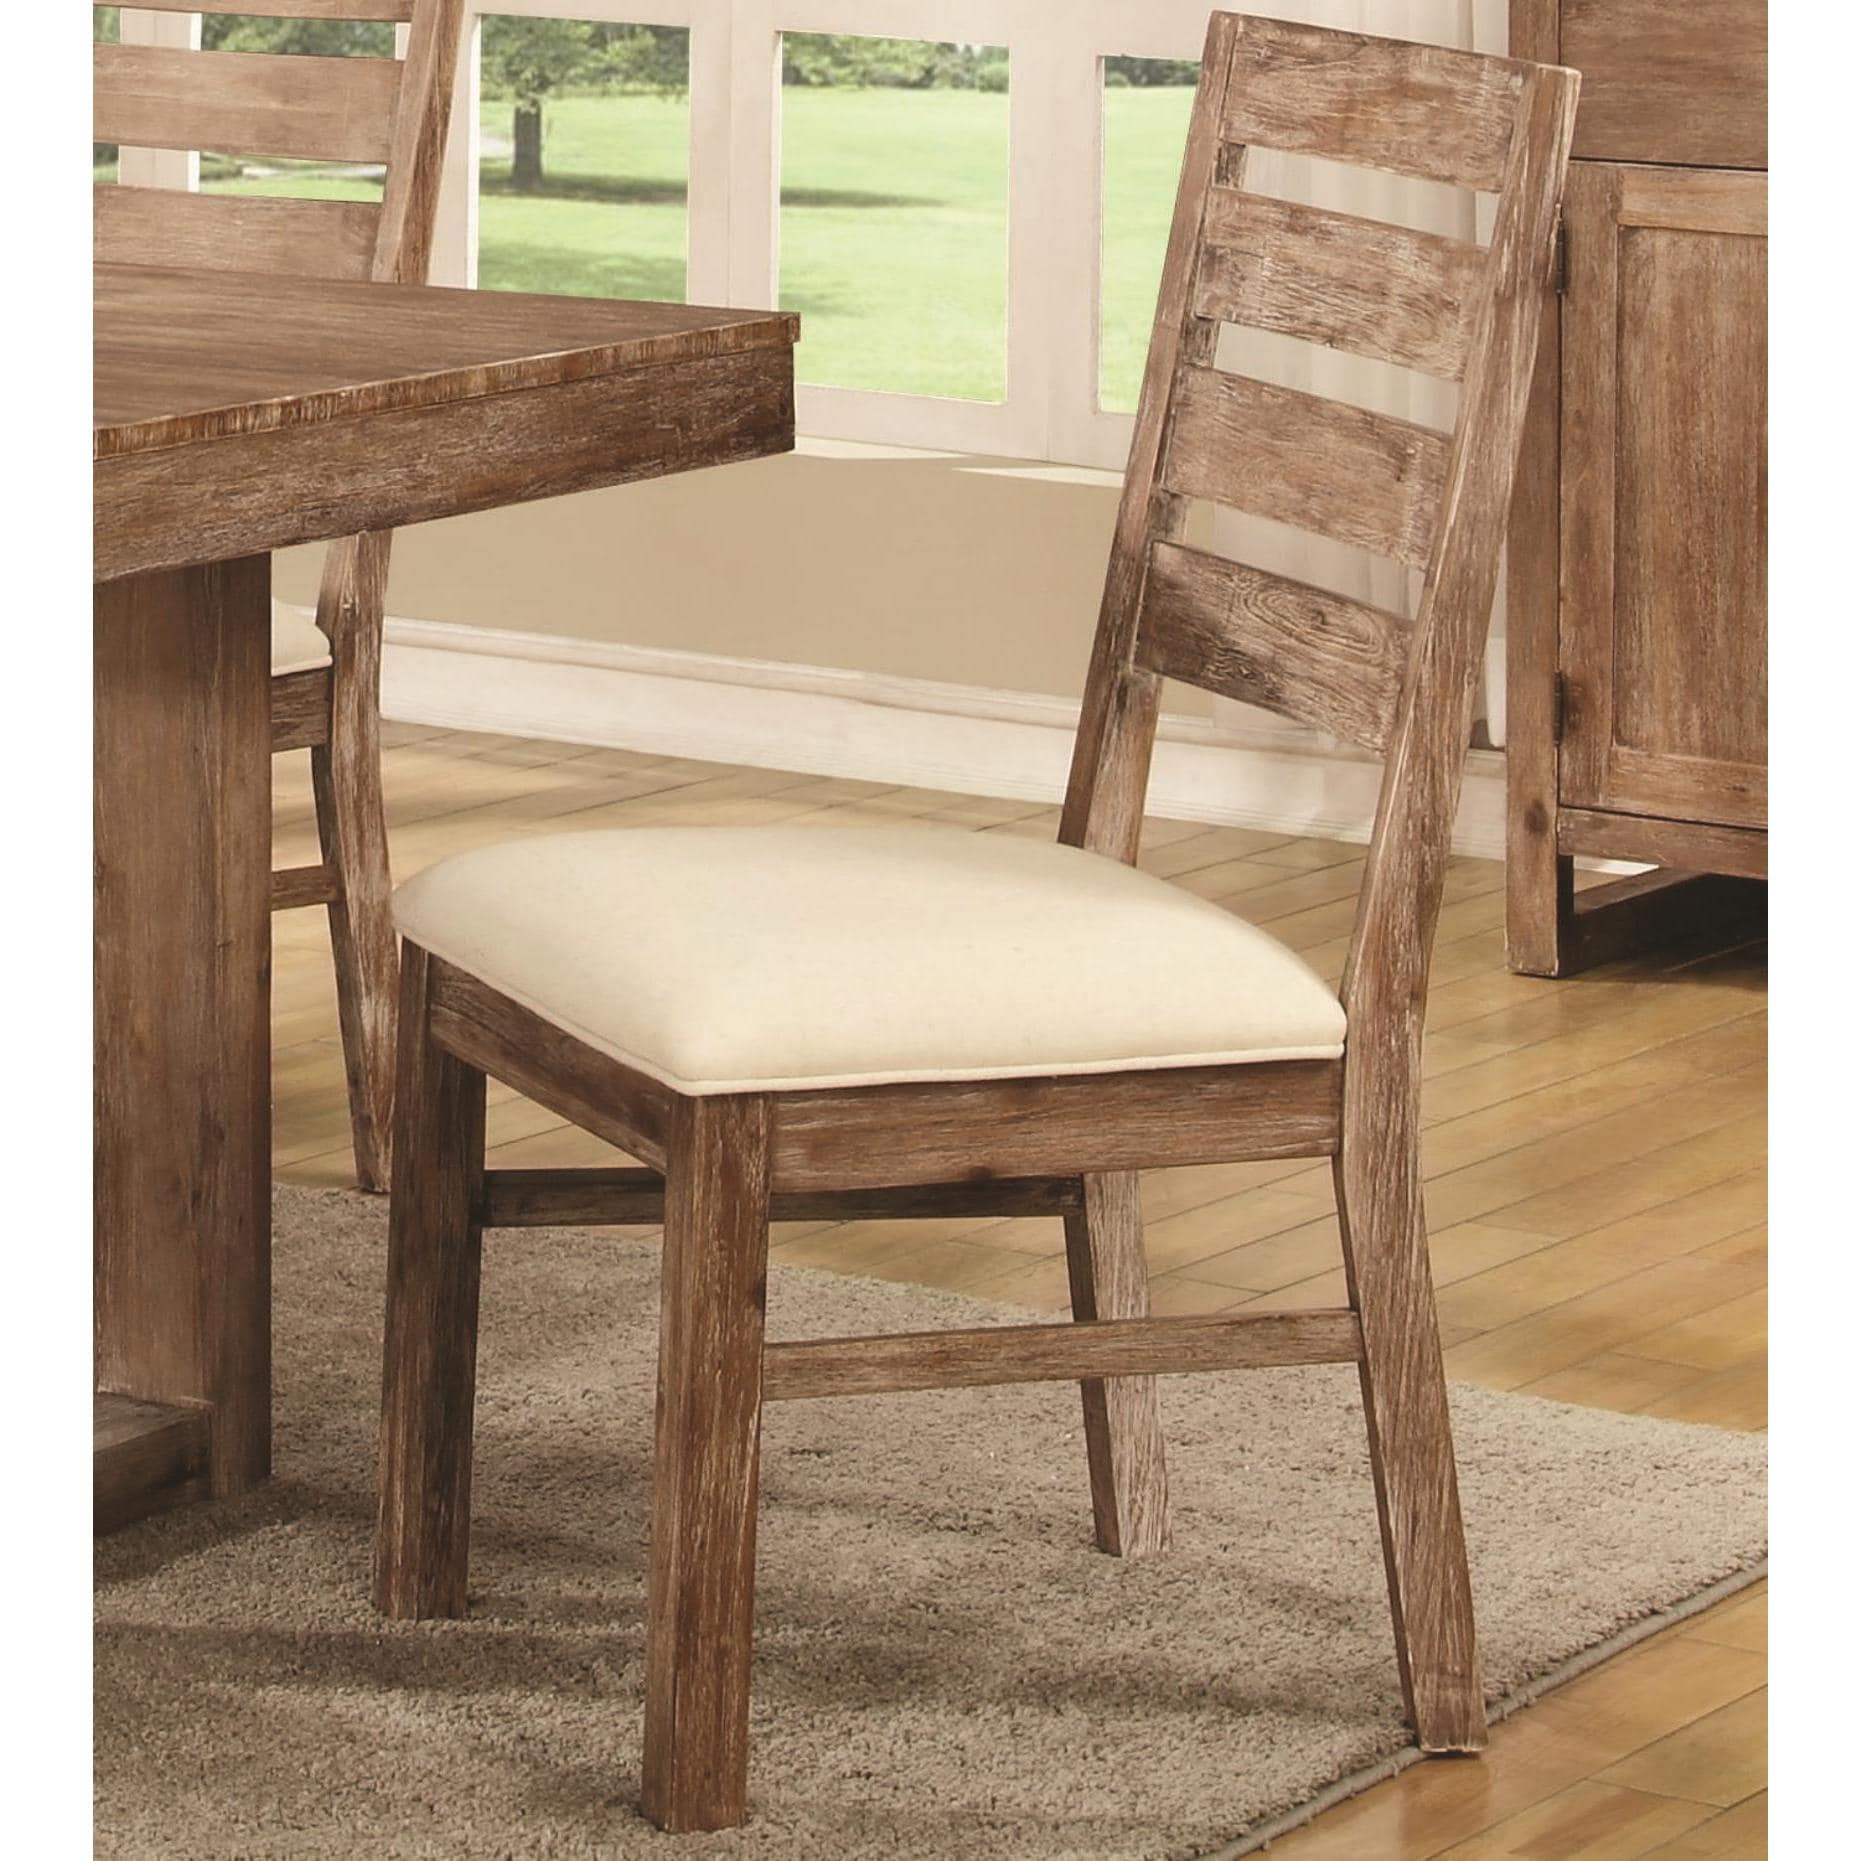 Madison Distressed Acacia Wood Dining Chairs Set of 2 Free